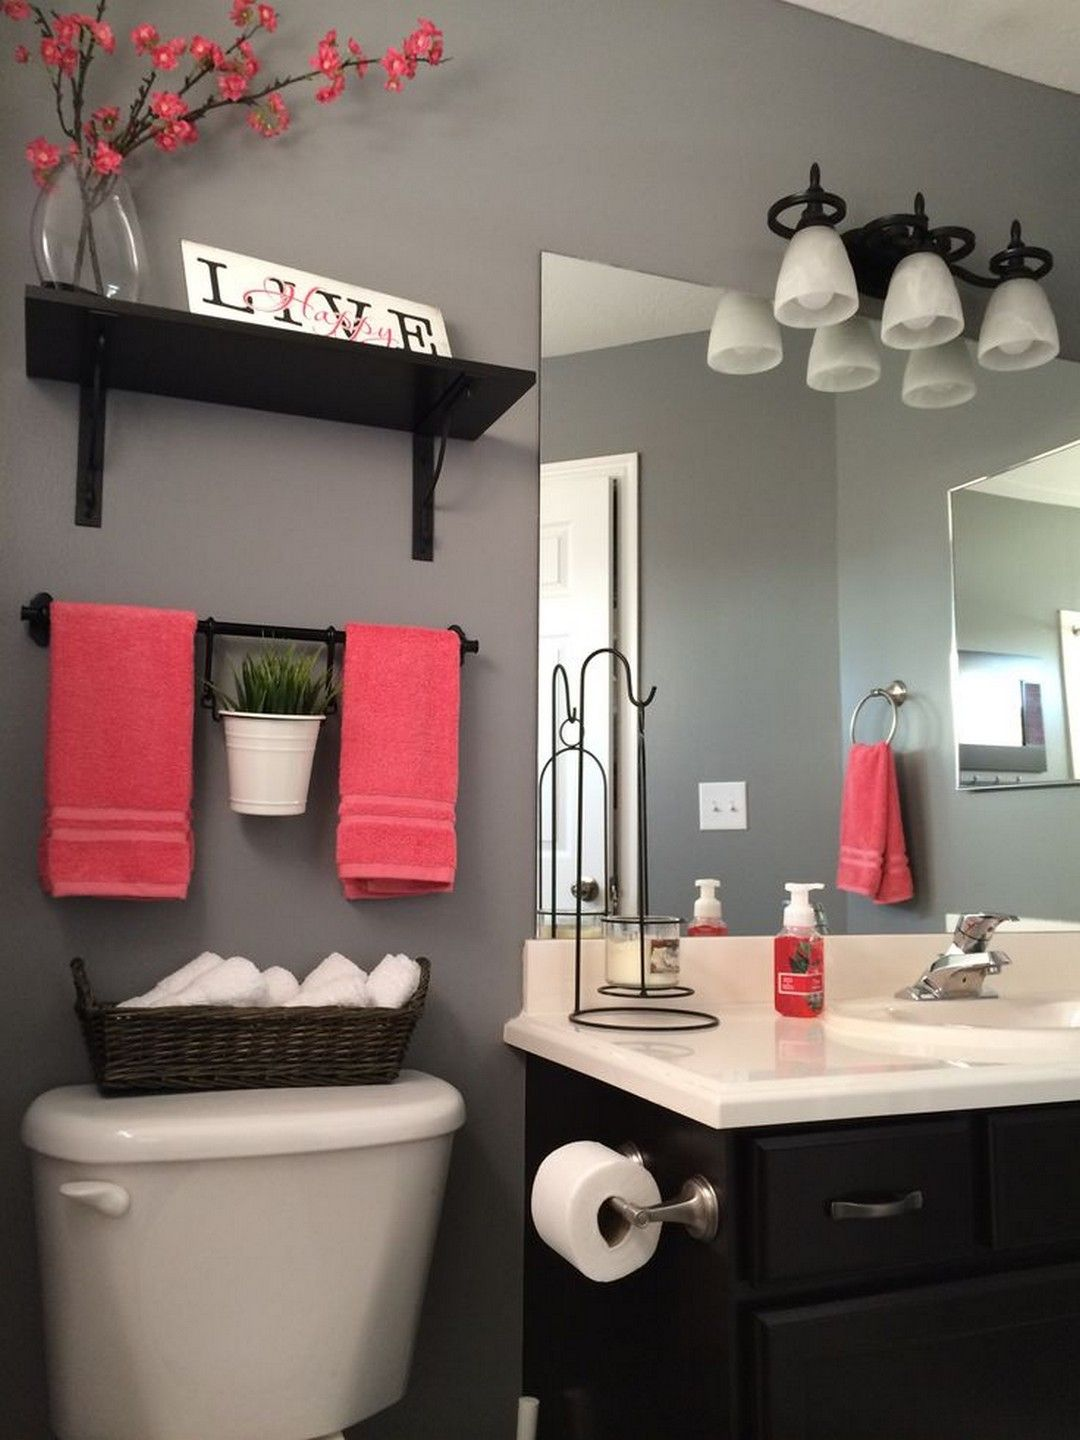 Bathroom Renovation Is Not Any Different Therefore If You Are - Ideas for bathroom makeovers on a budget